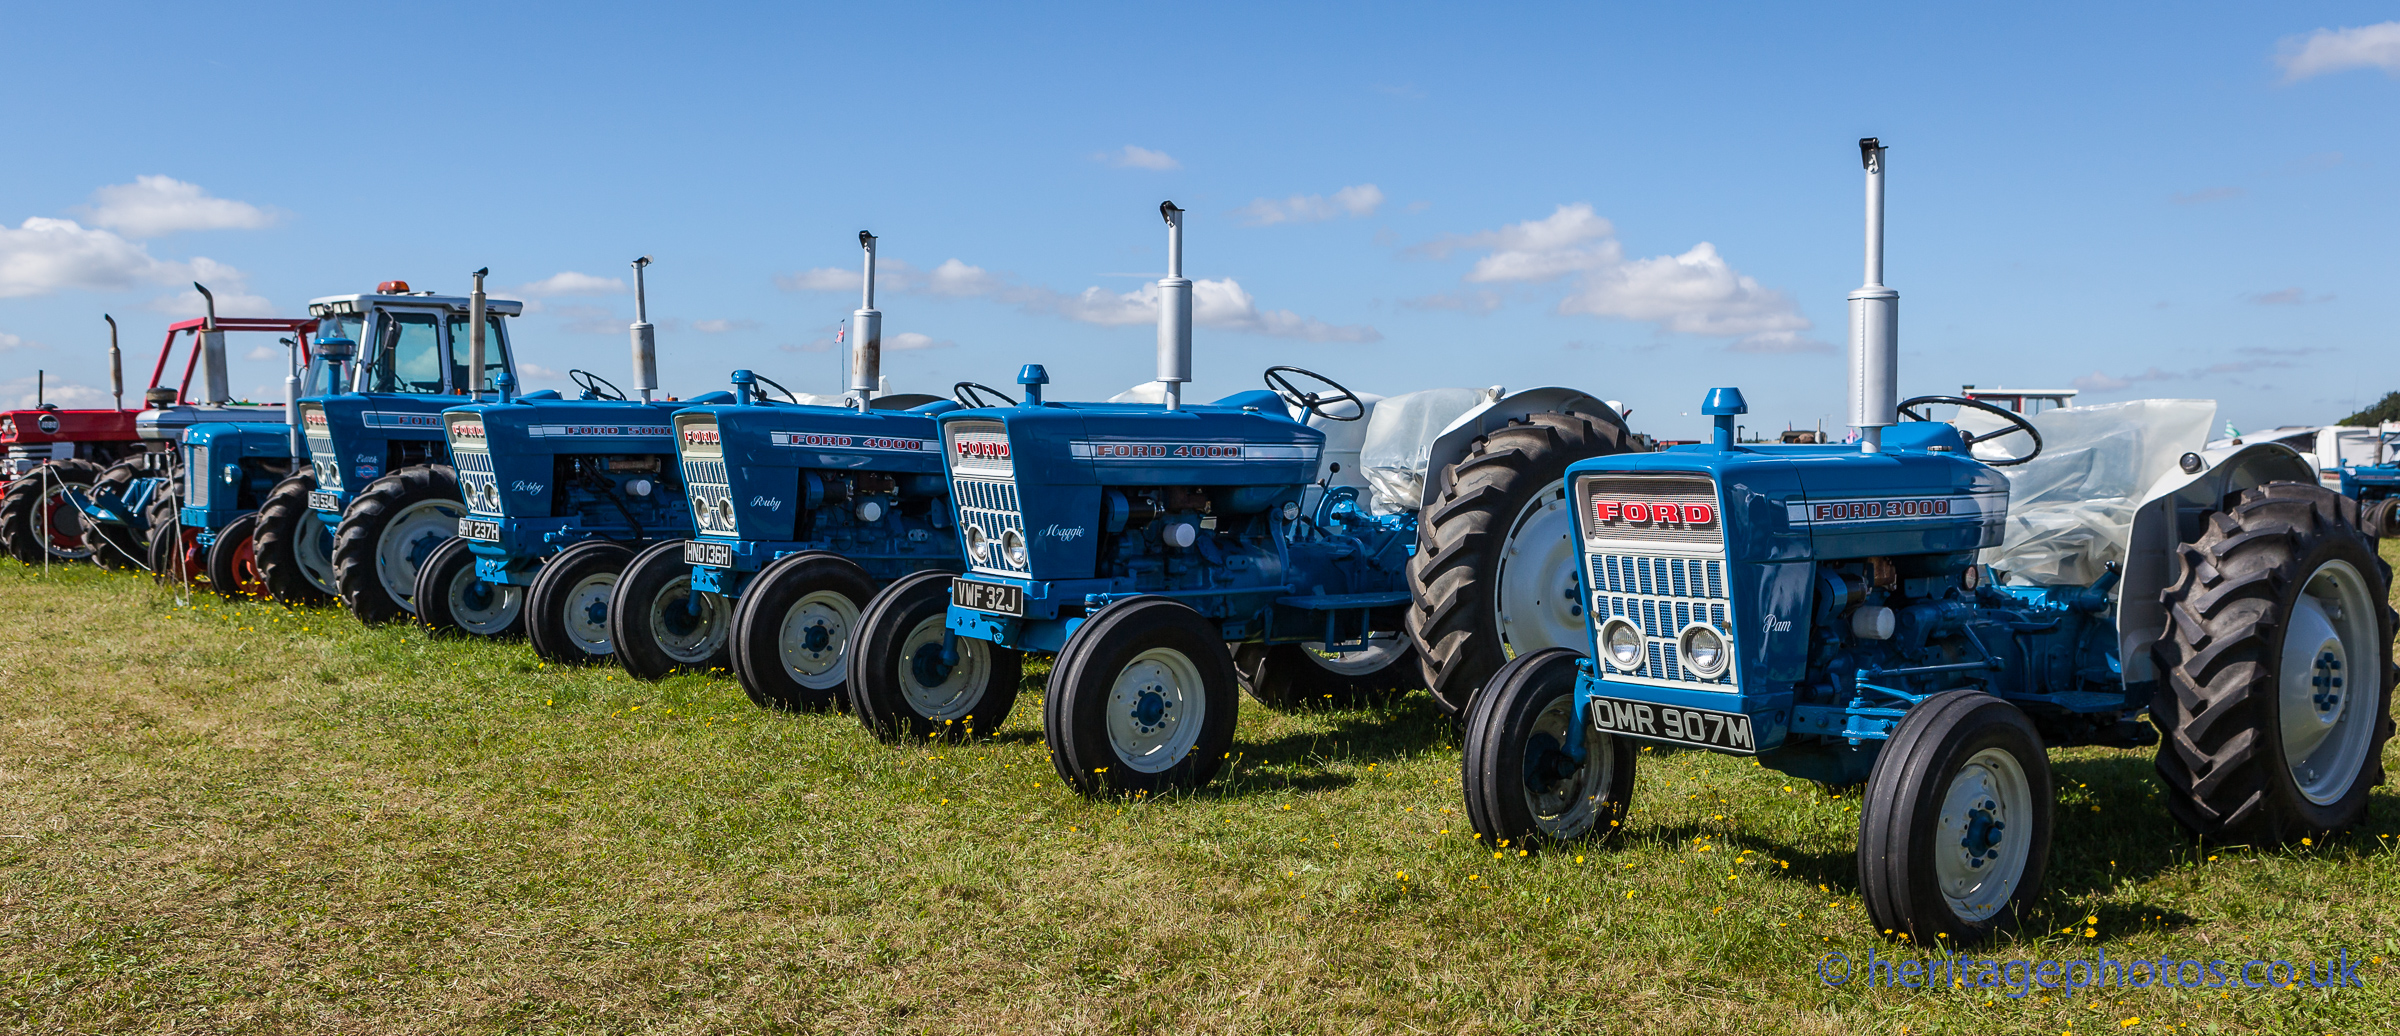 The 44th Annual Gloucestershire Vintage & Country Extravaganza